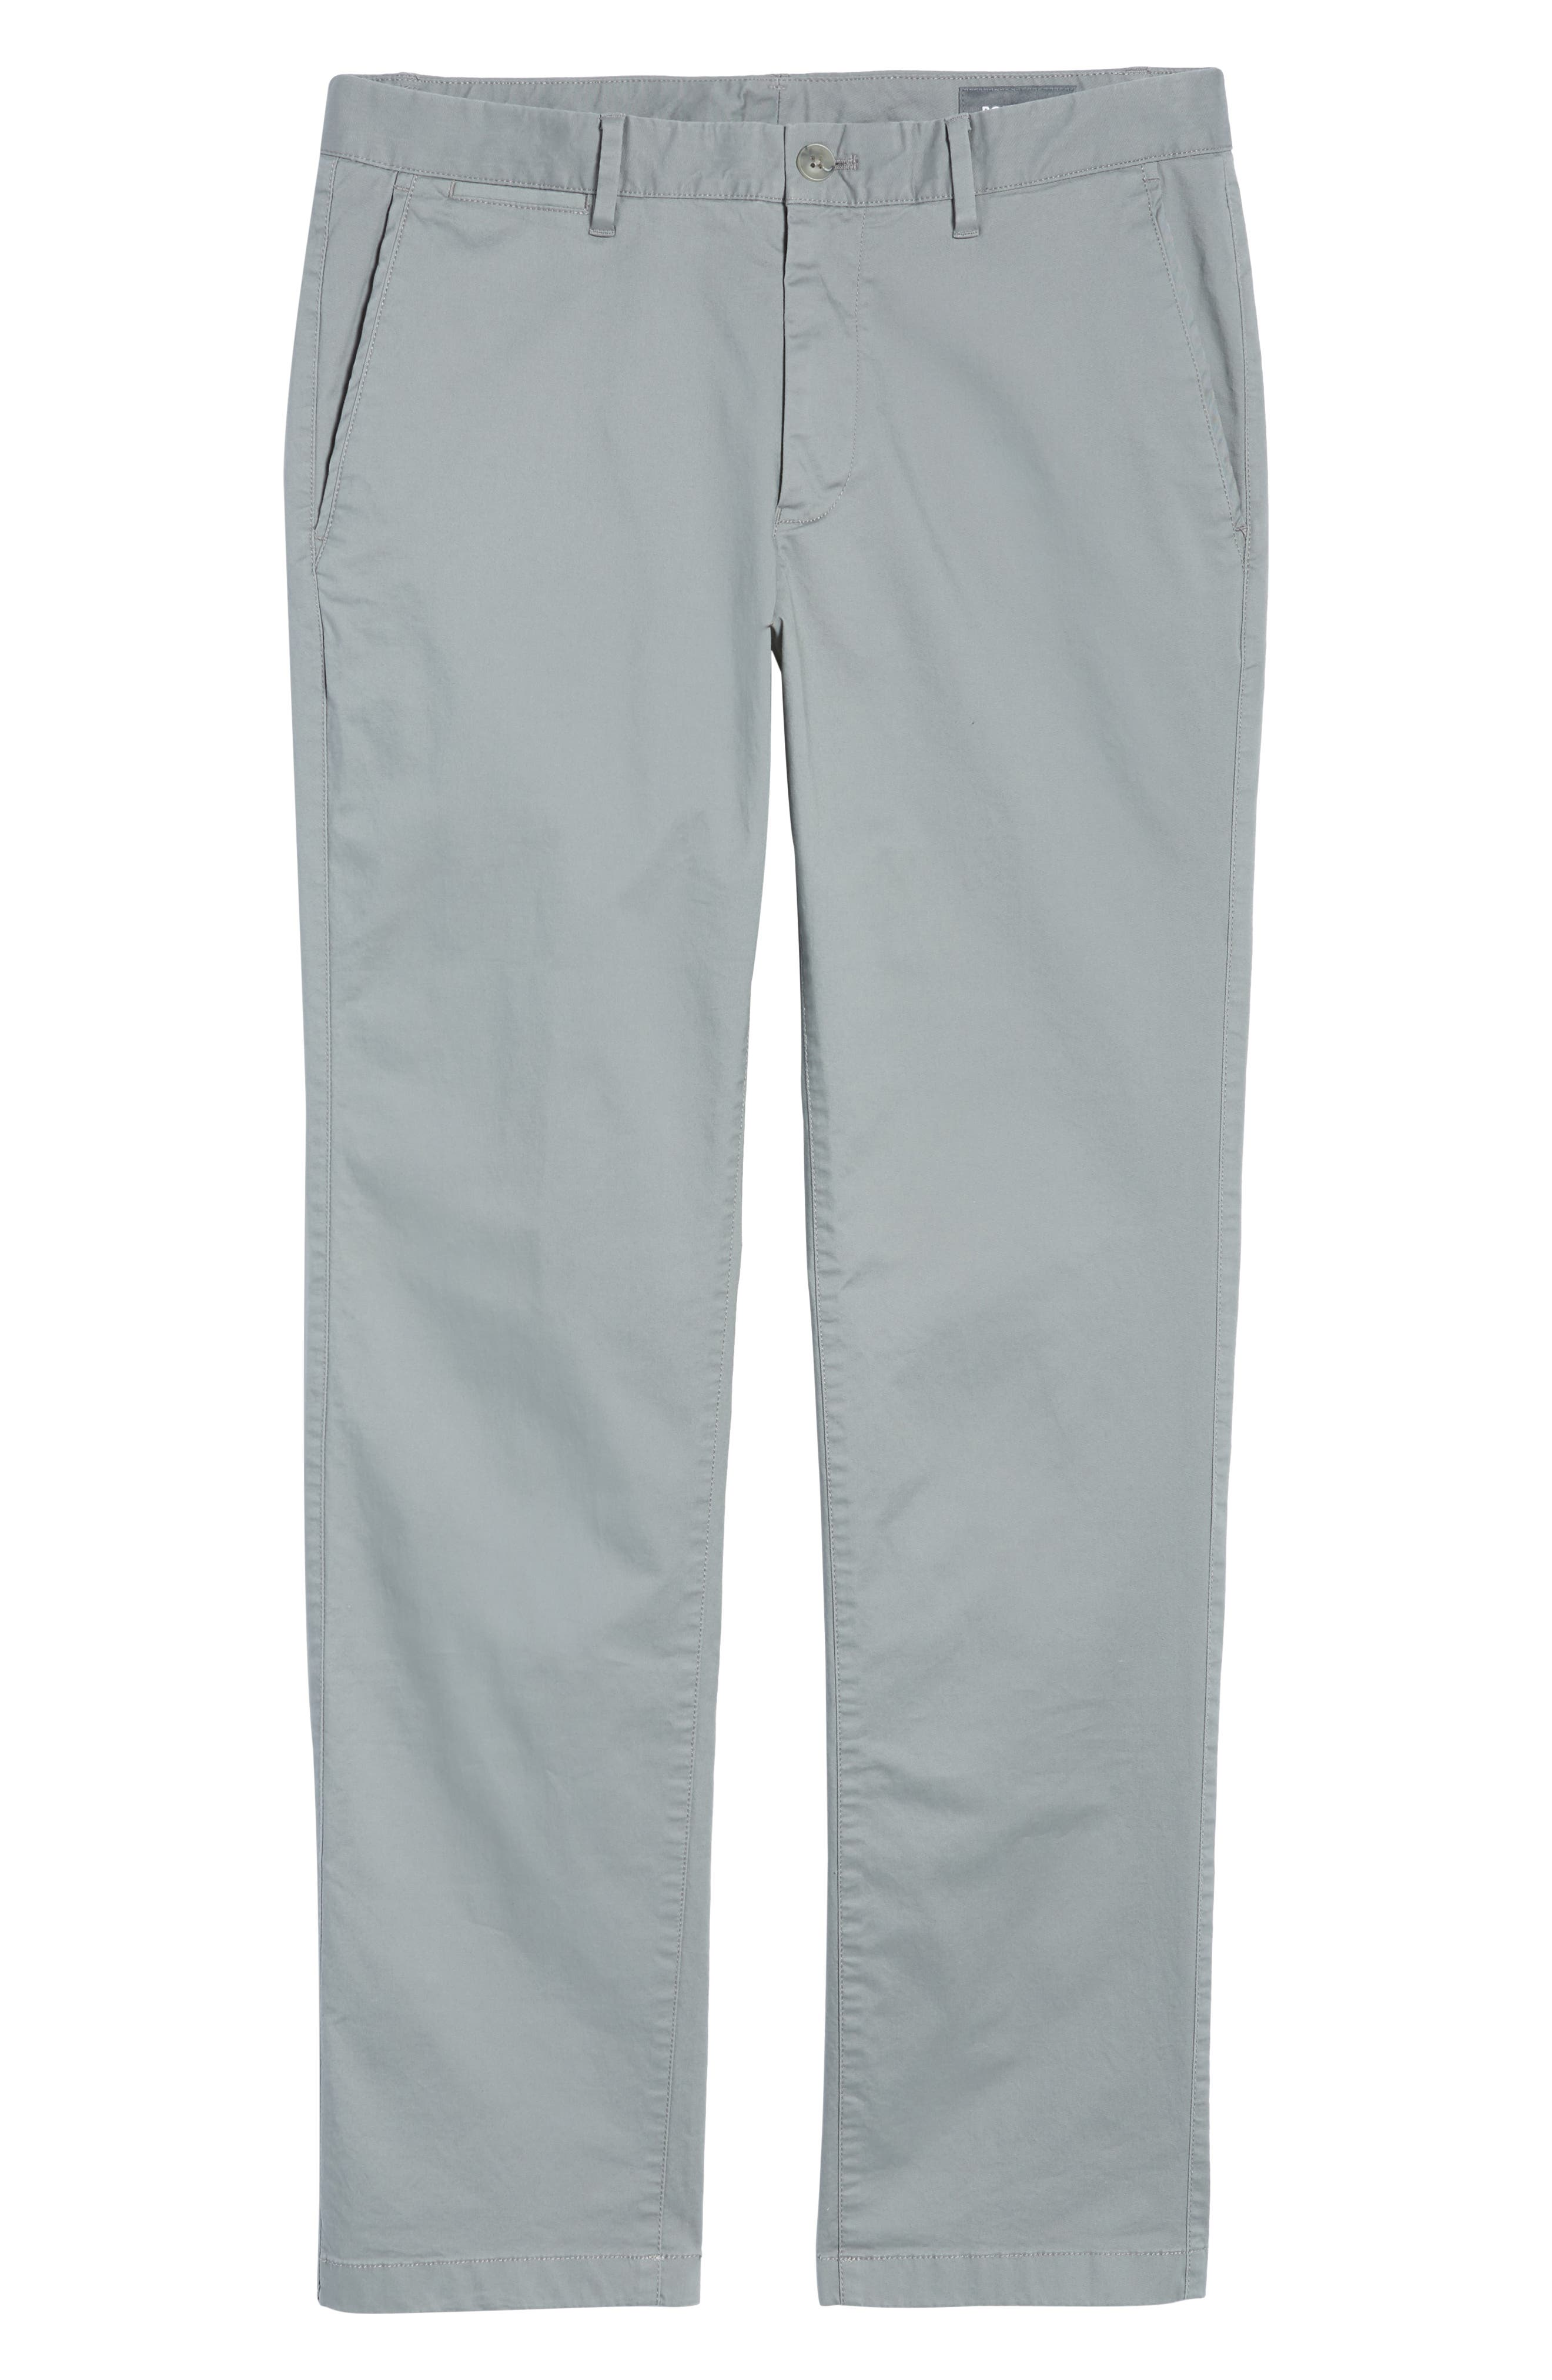 Summer Weight Slim Fit Stretch Chinos,                             Alternate thumbnail 6, color,                             020